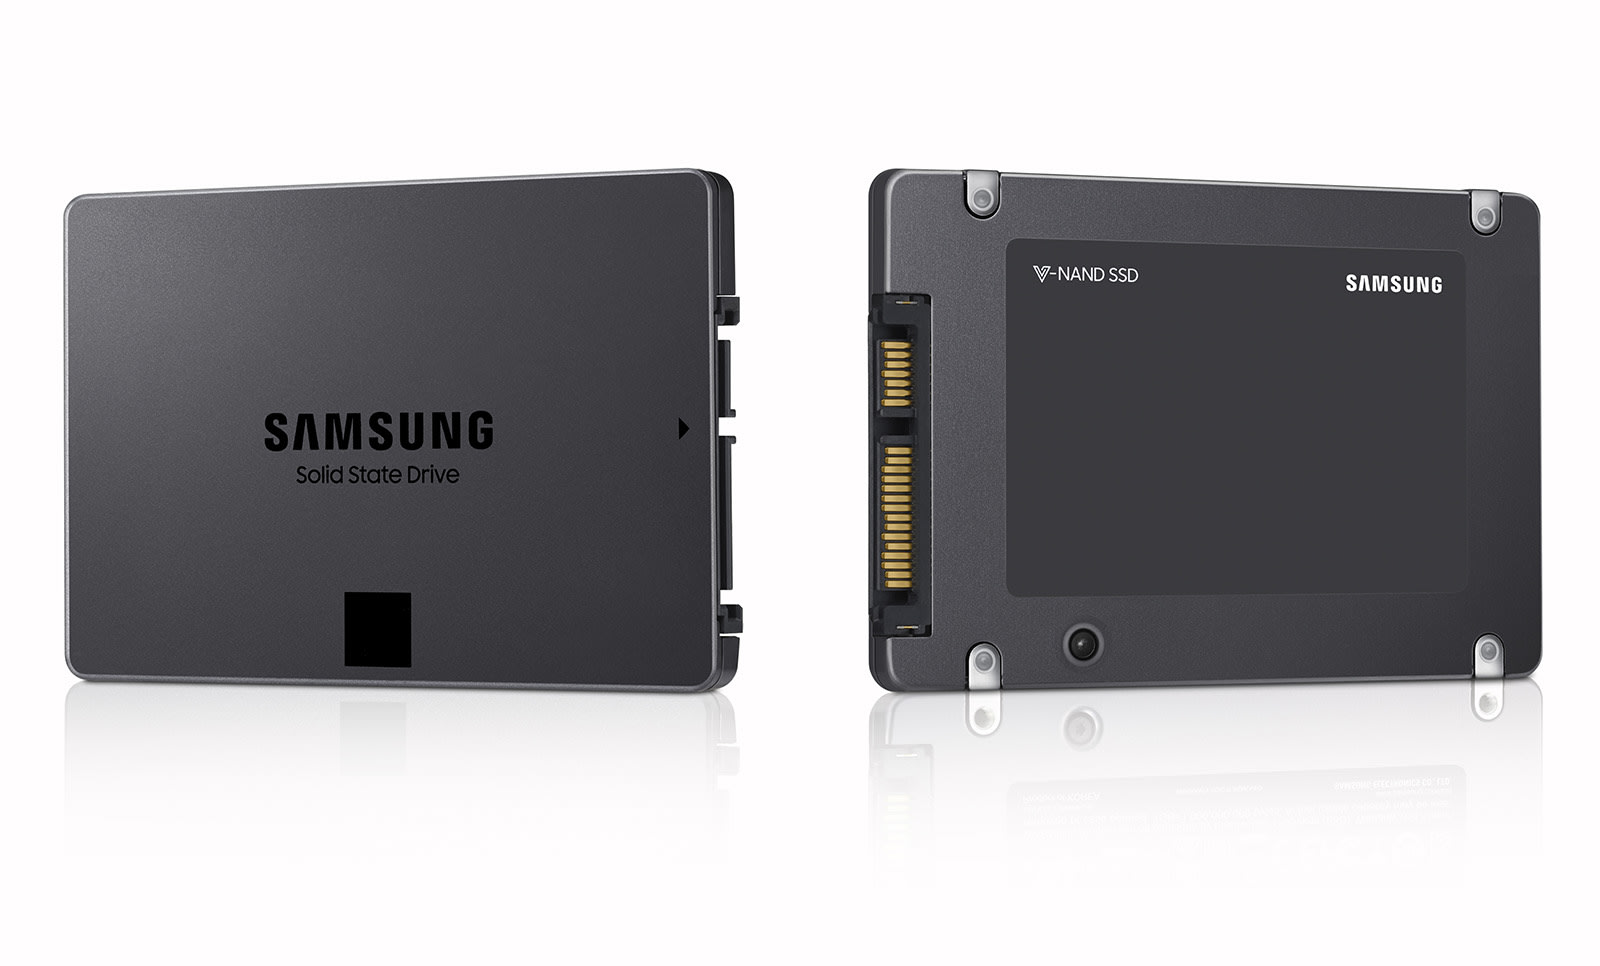 Samsung is building a high-speed 4TB SSD for everyone